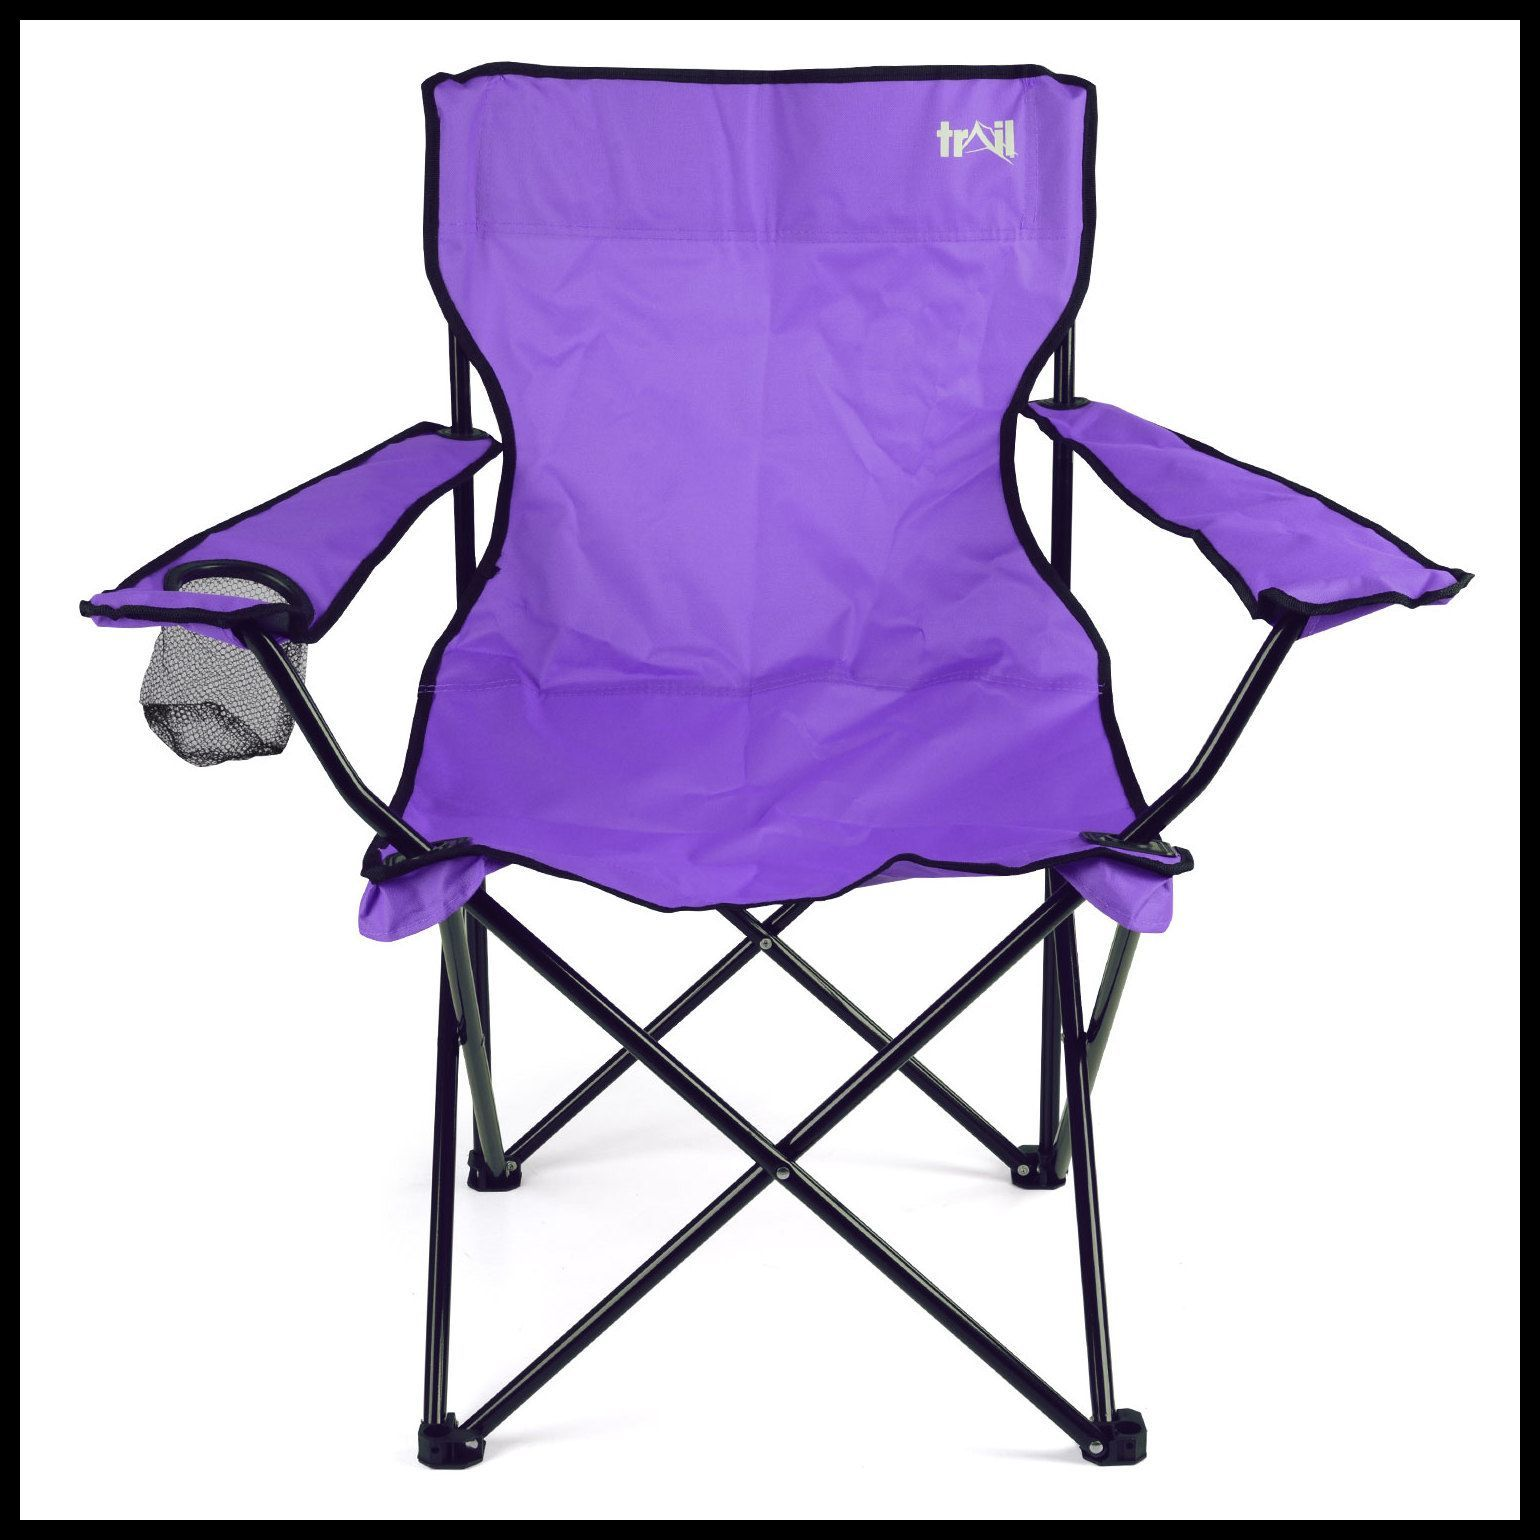 Most Comfortable Camping Chair Swing With Stand Pepperfry Chairs Table Which Is The Folding Be